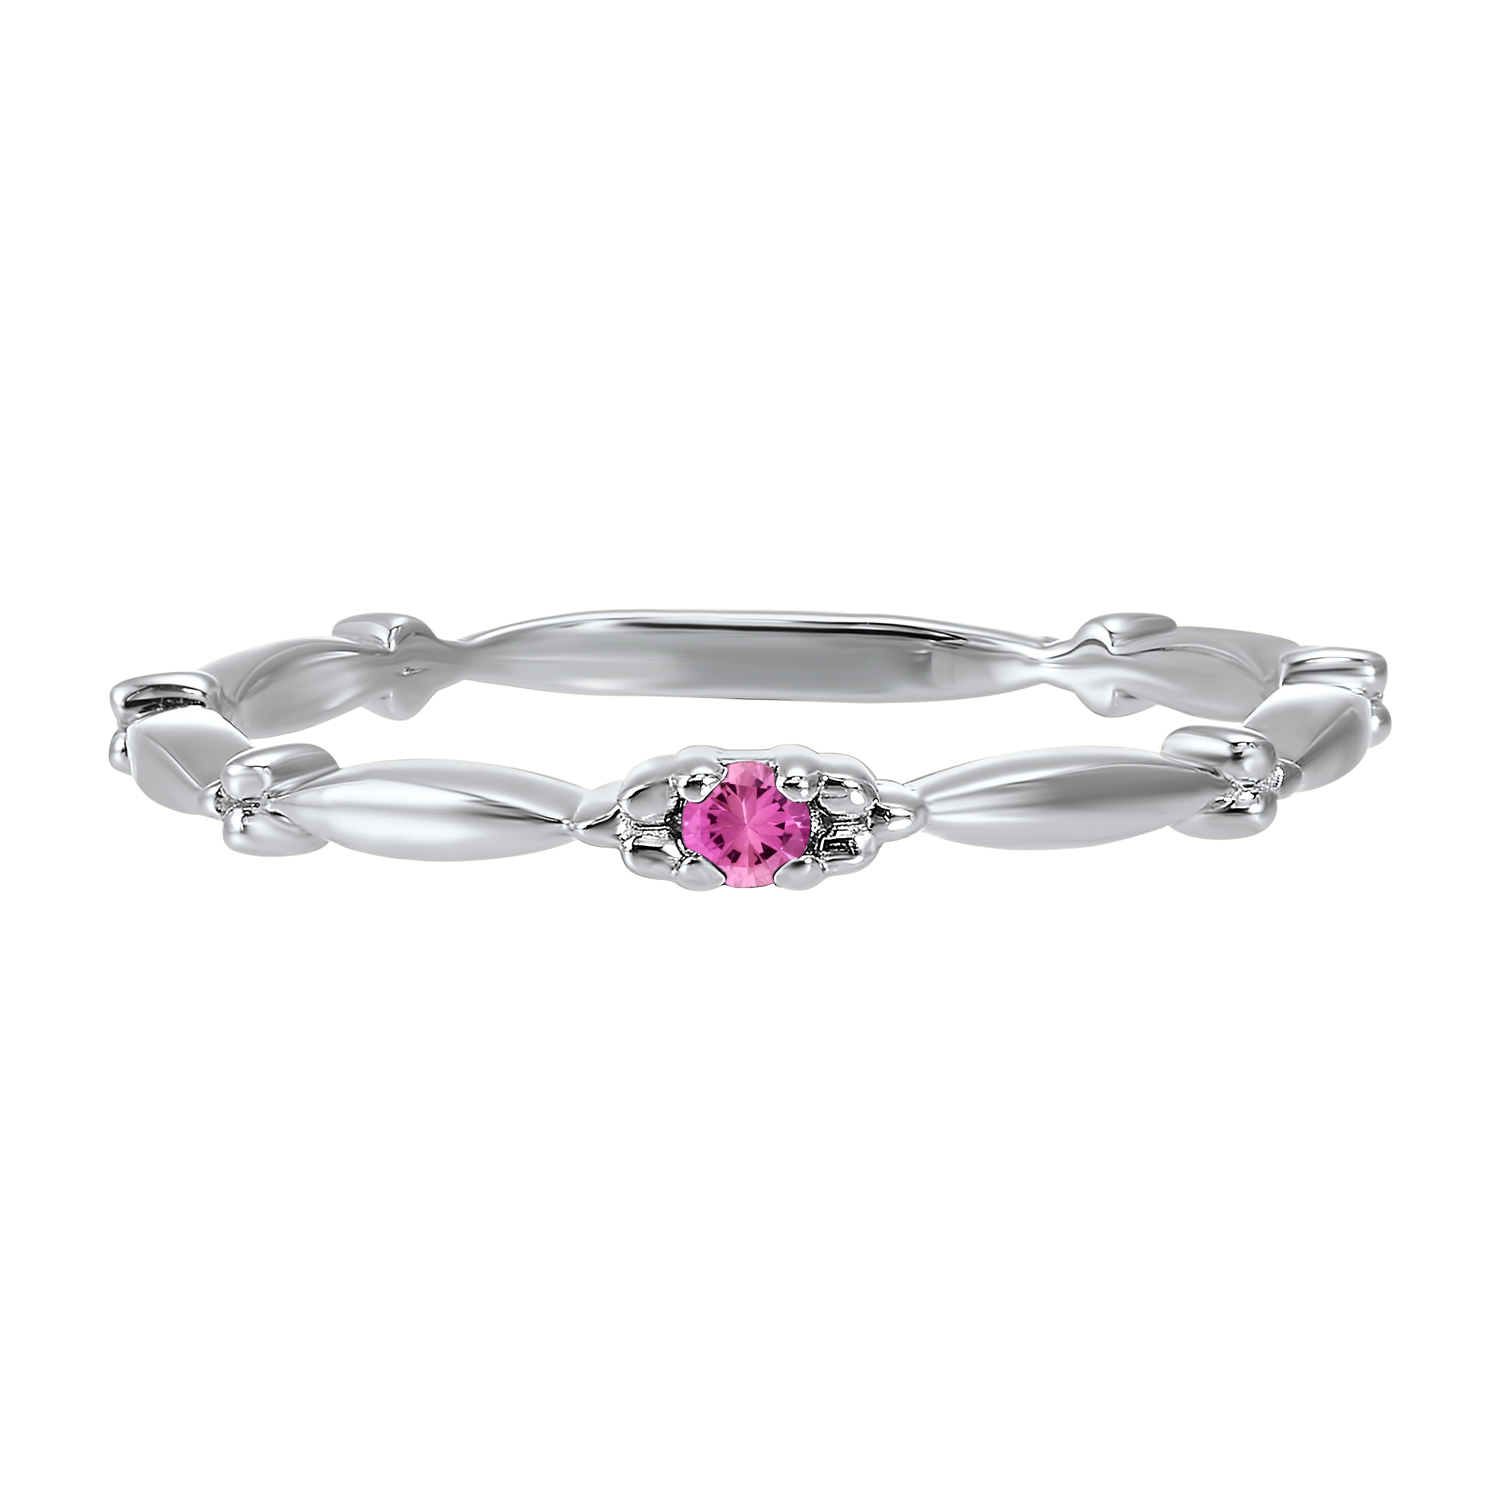 10K White Gold Stackable Prong Pink Tourmaline Band Moseley Diamond Showcase Inc Columbia, SC